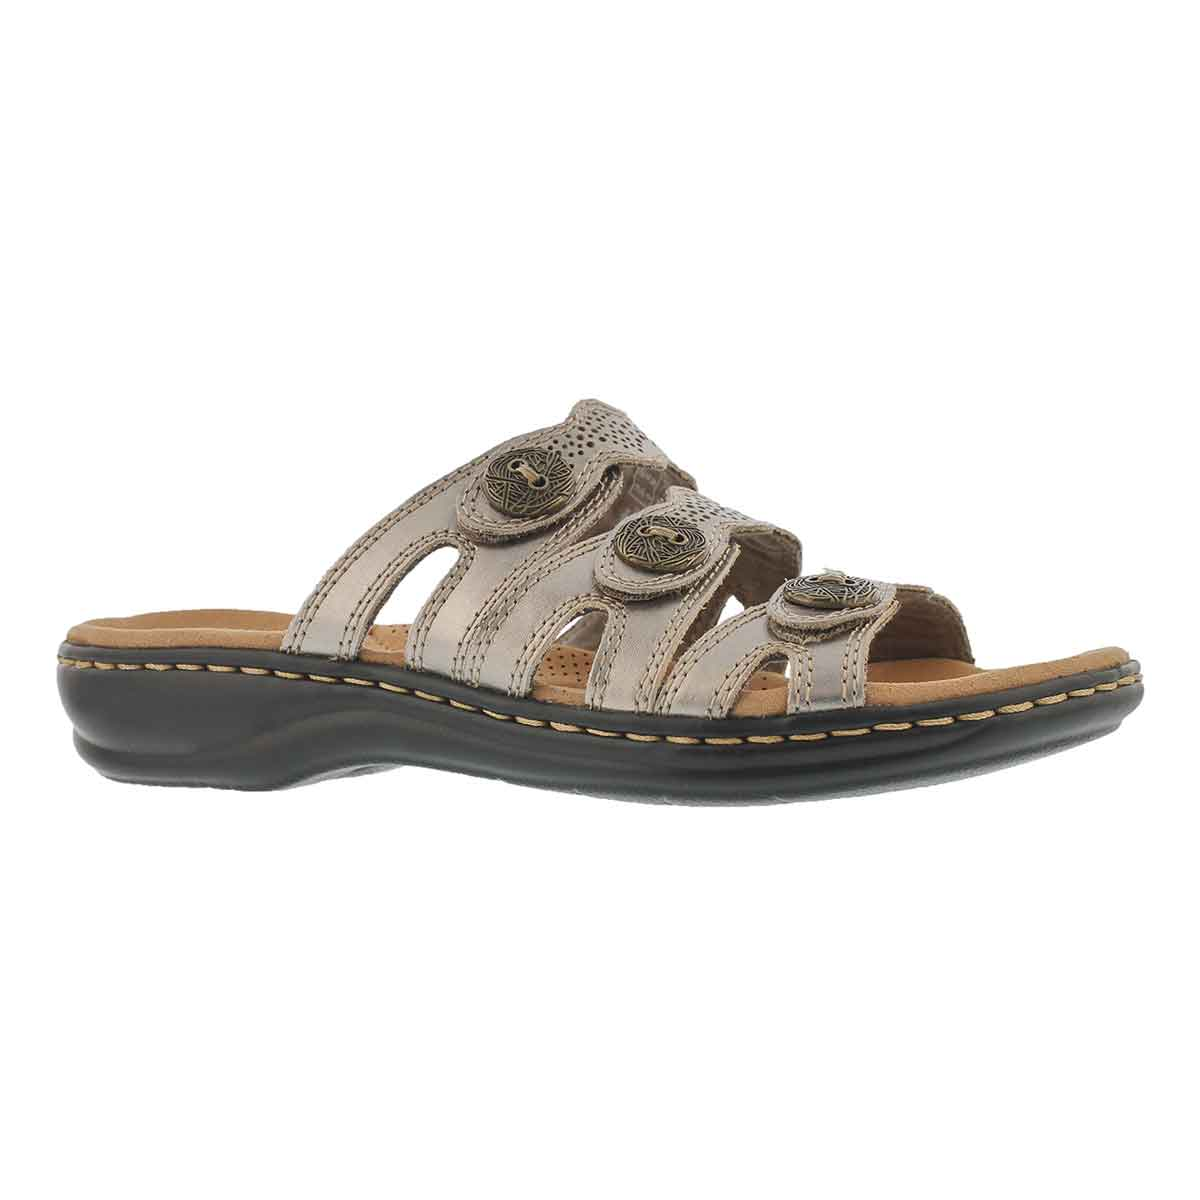 Women's LEISA GRACE pewter casual slide sandals